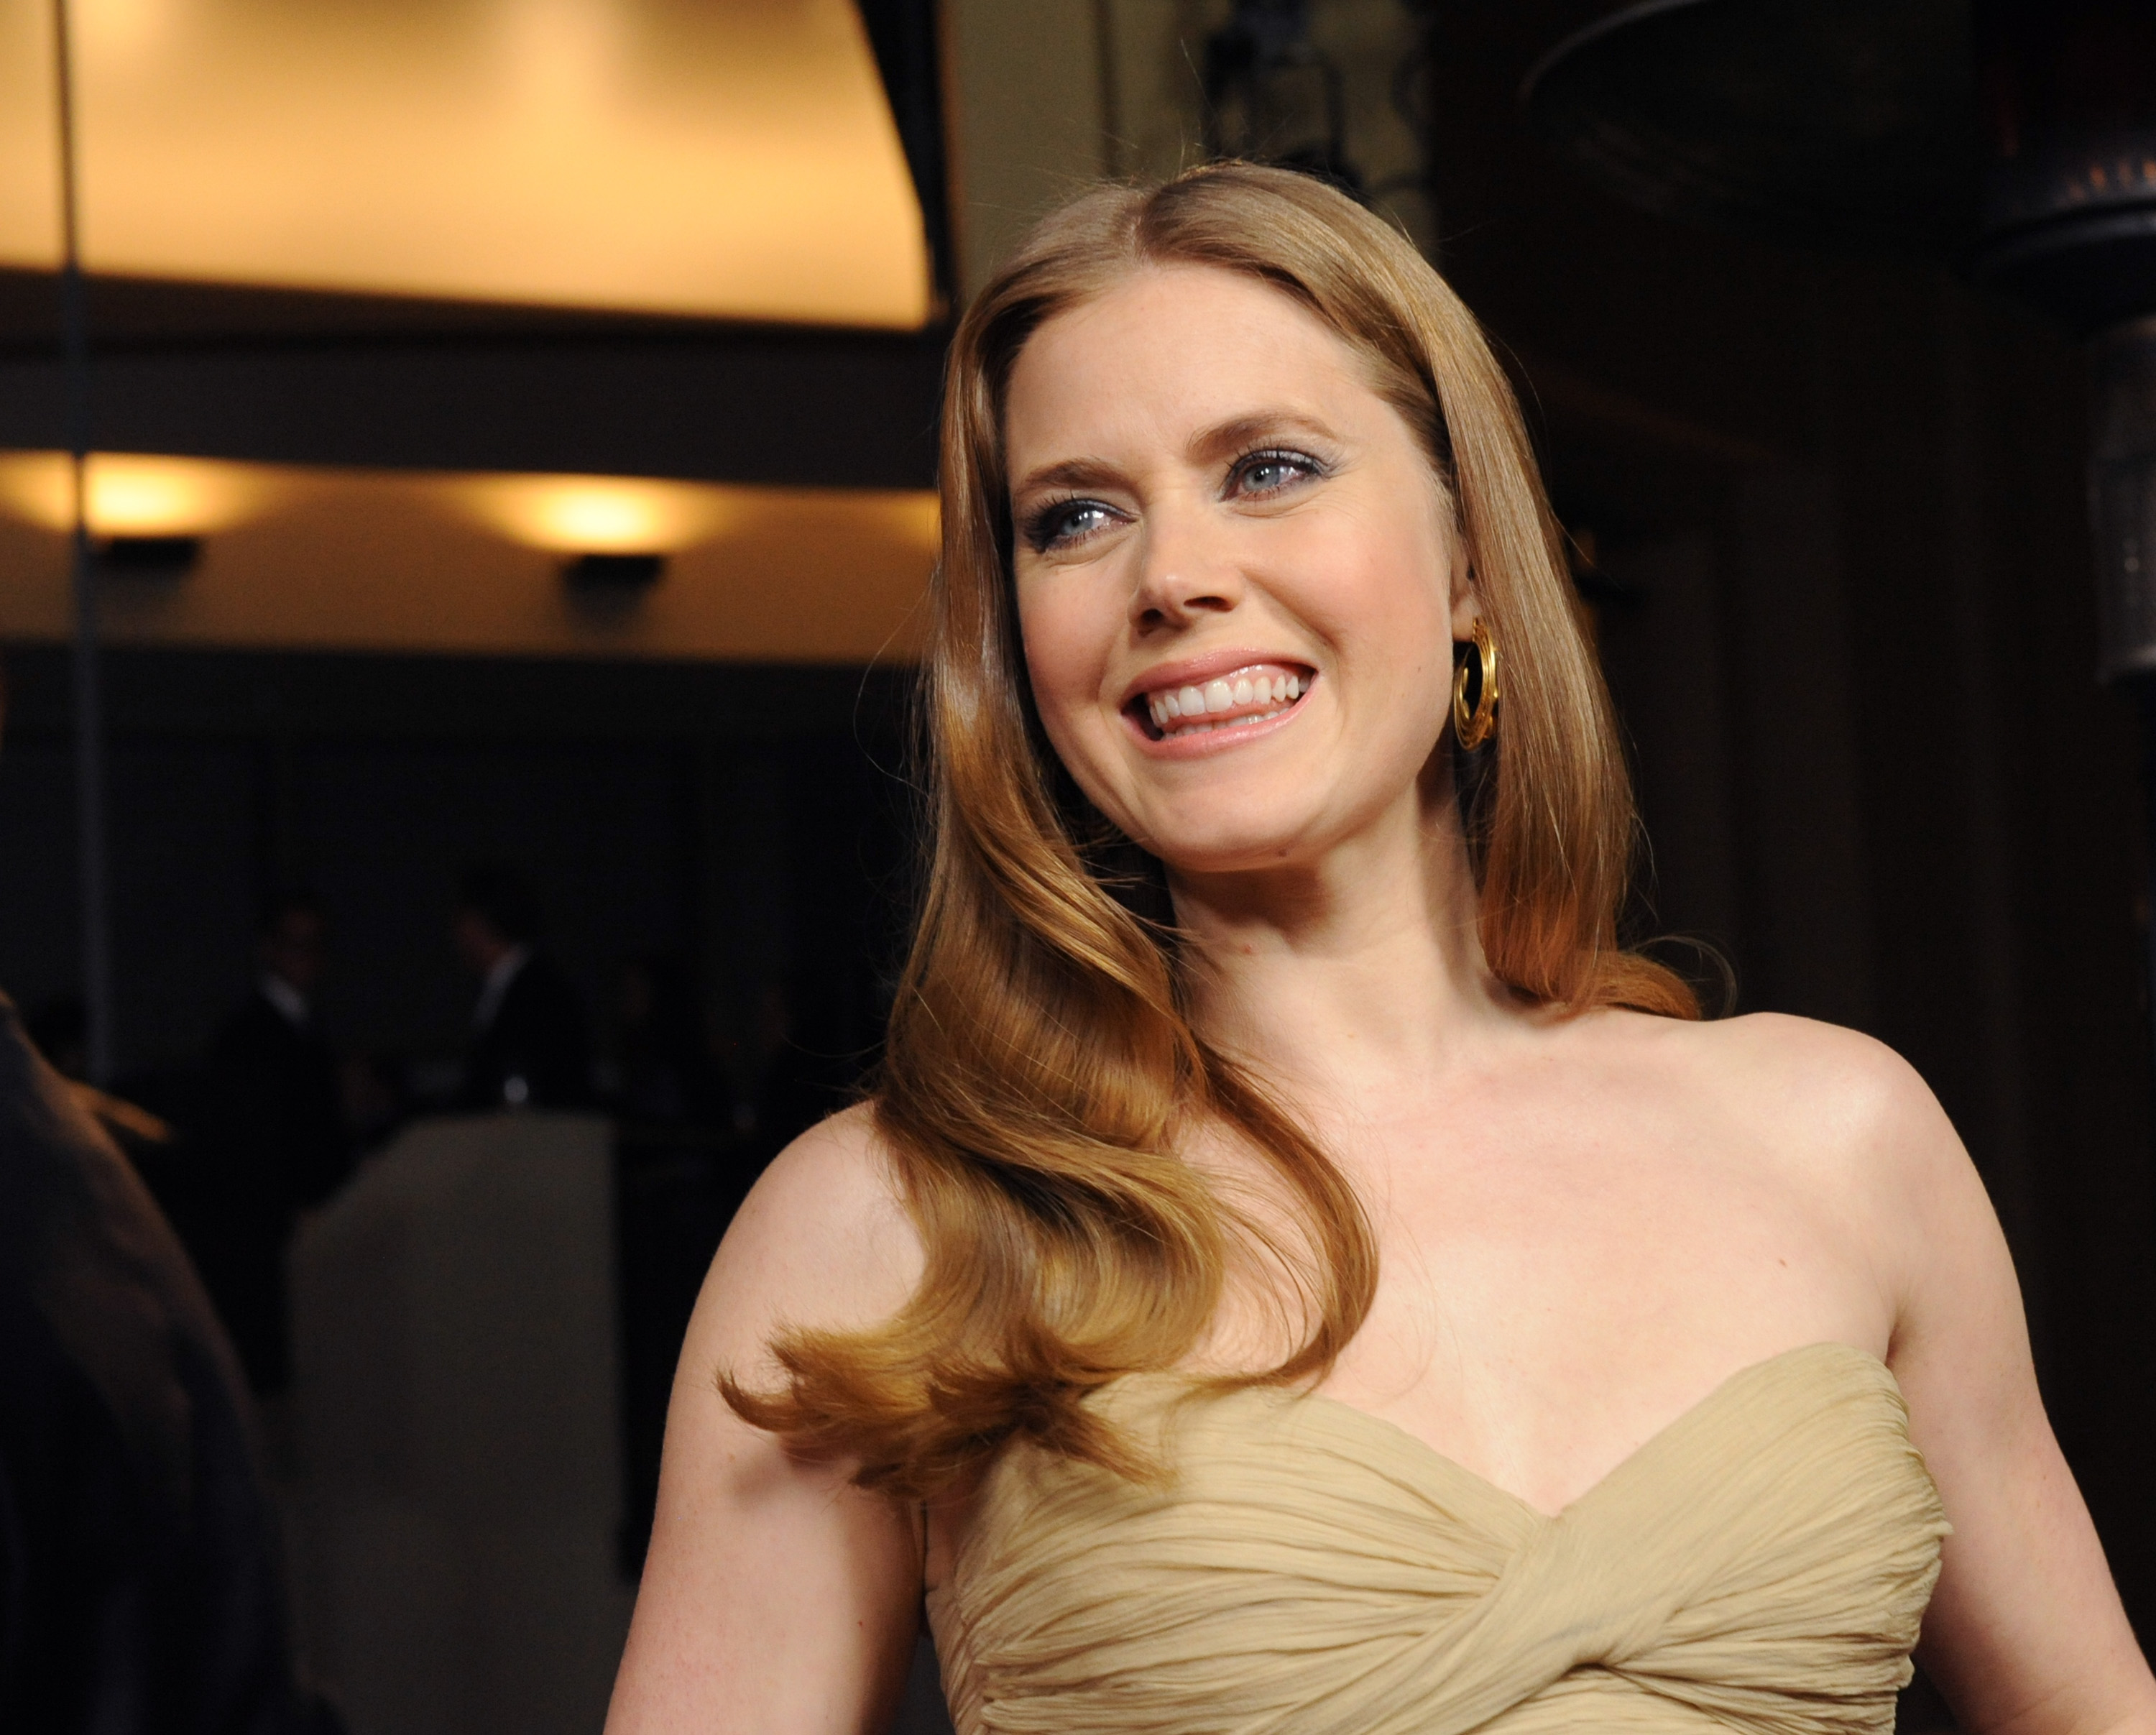 wonderful amy adams beautiful smile look face hd background free mobile download wallpaper